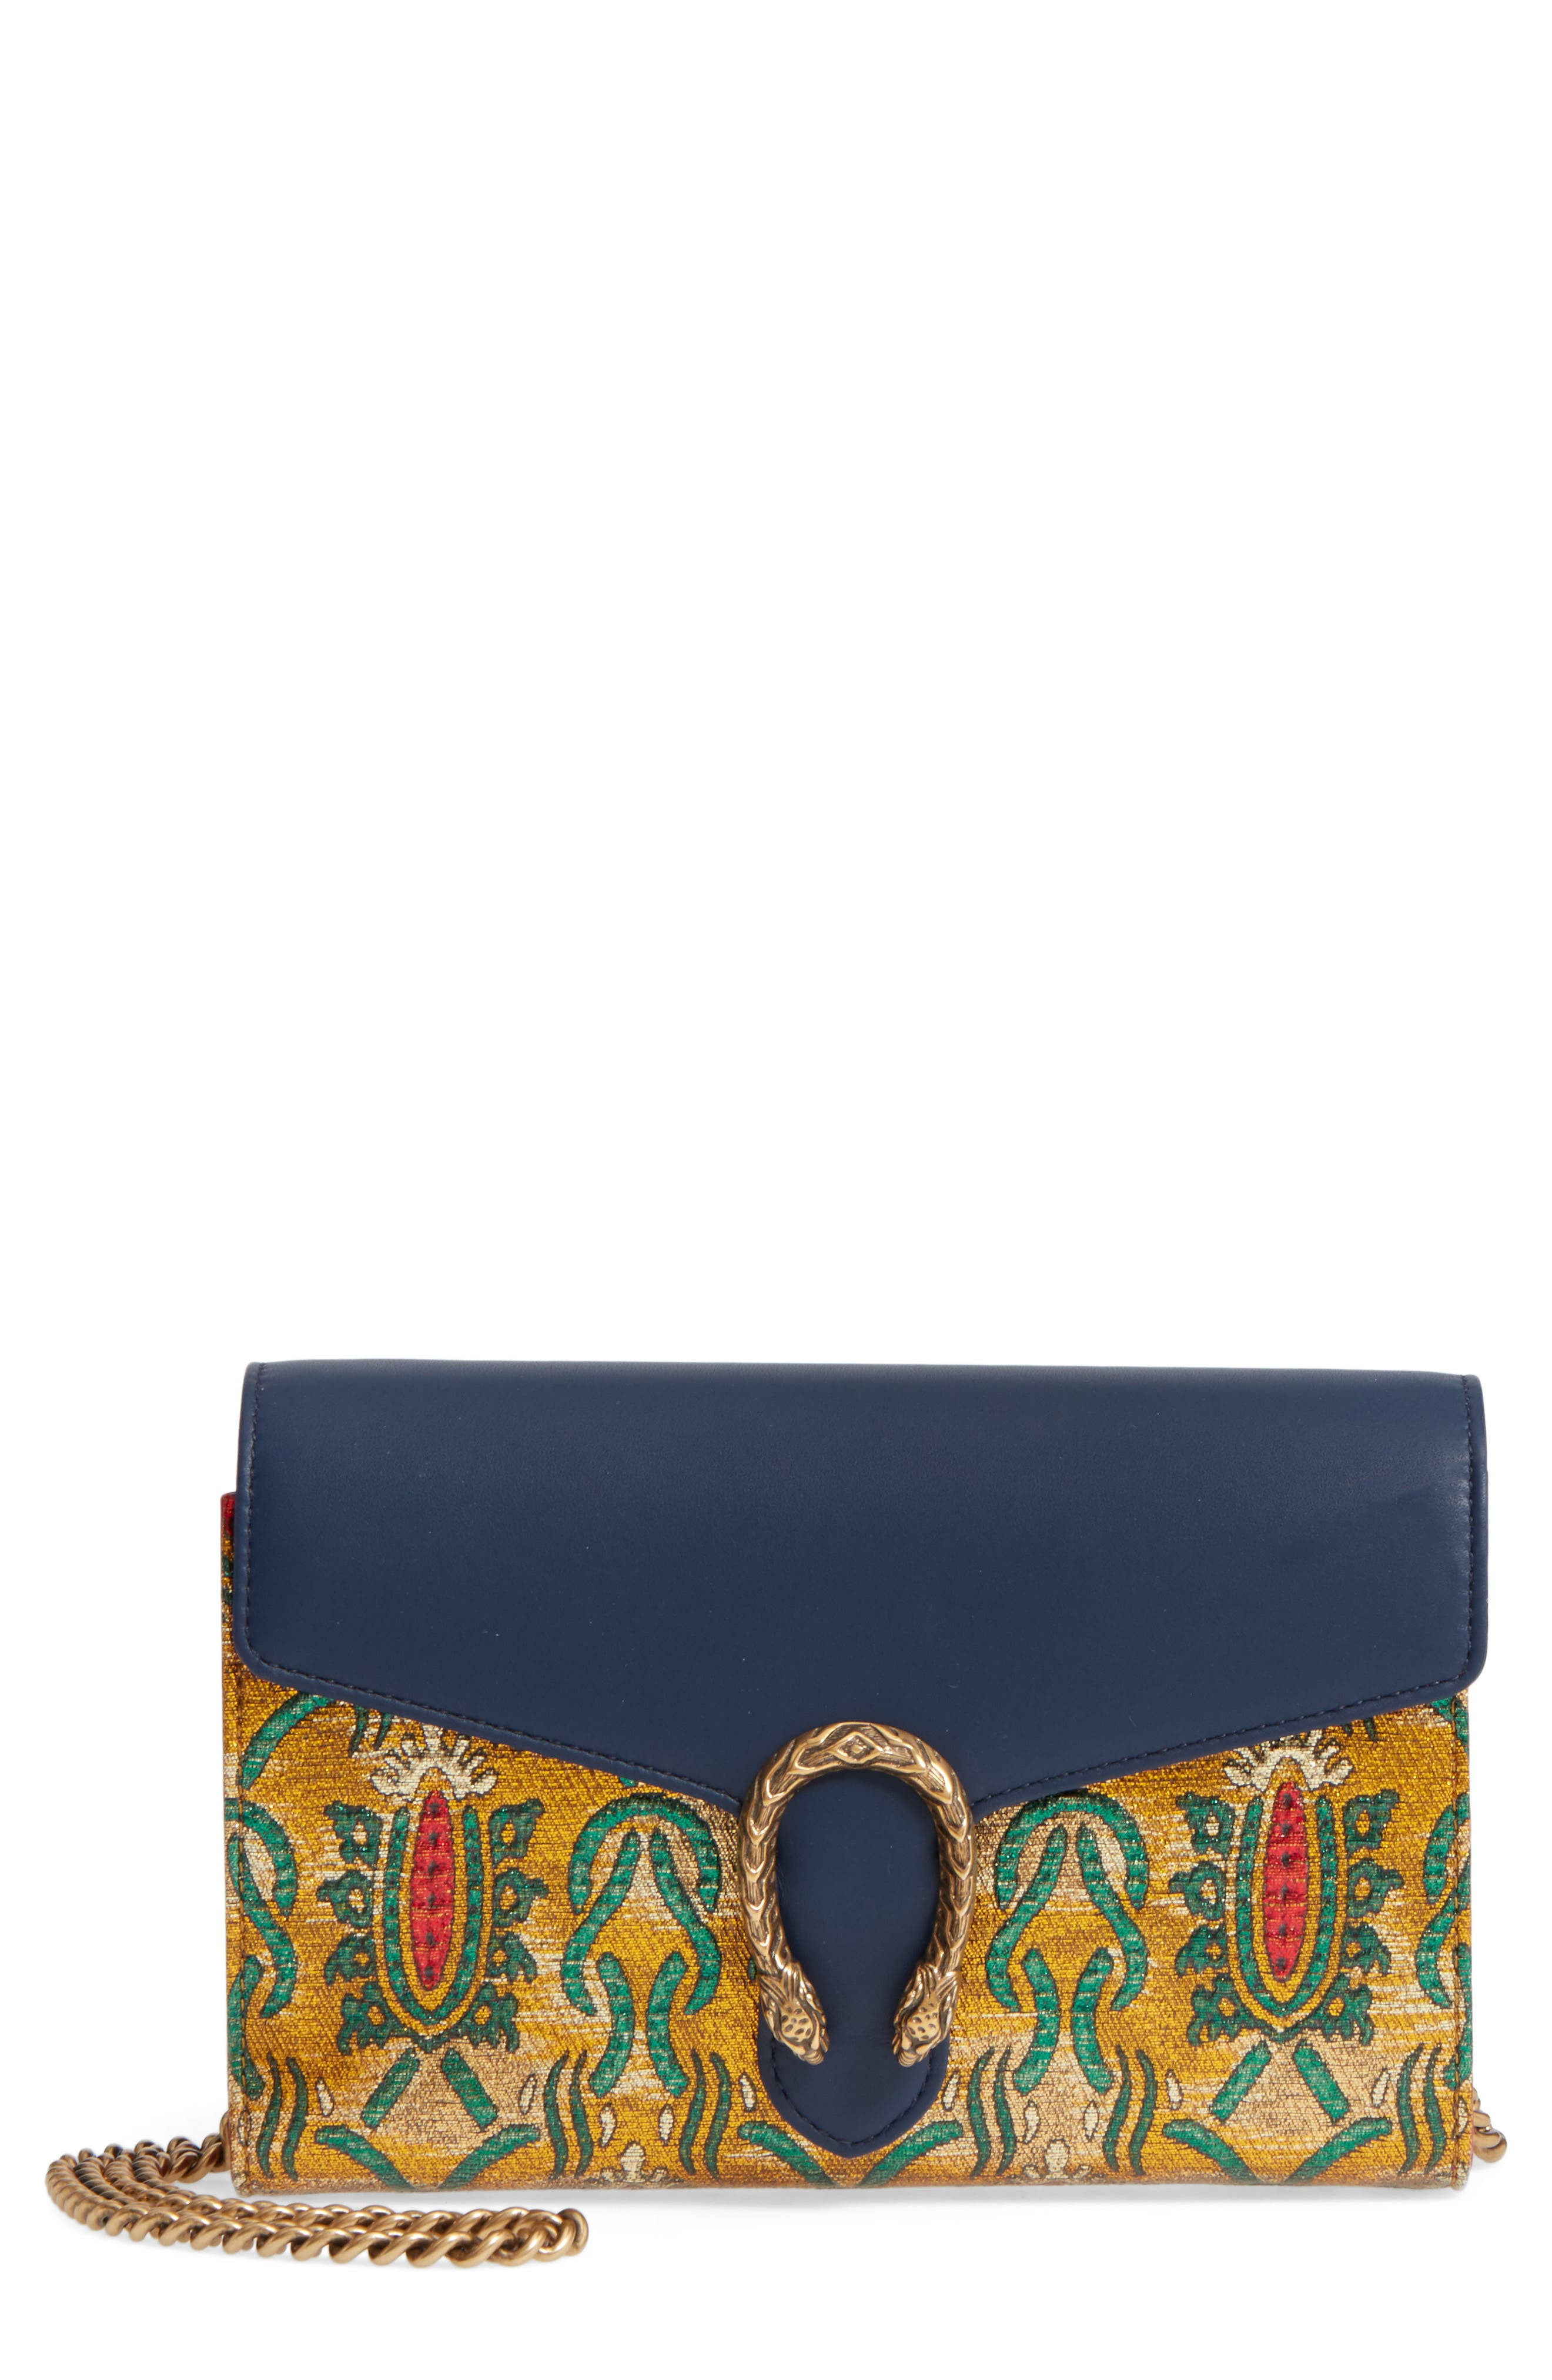 Gucci Dionysus Brocade Wallet on a Chain